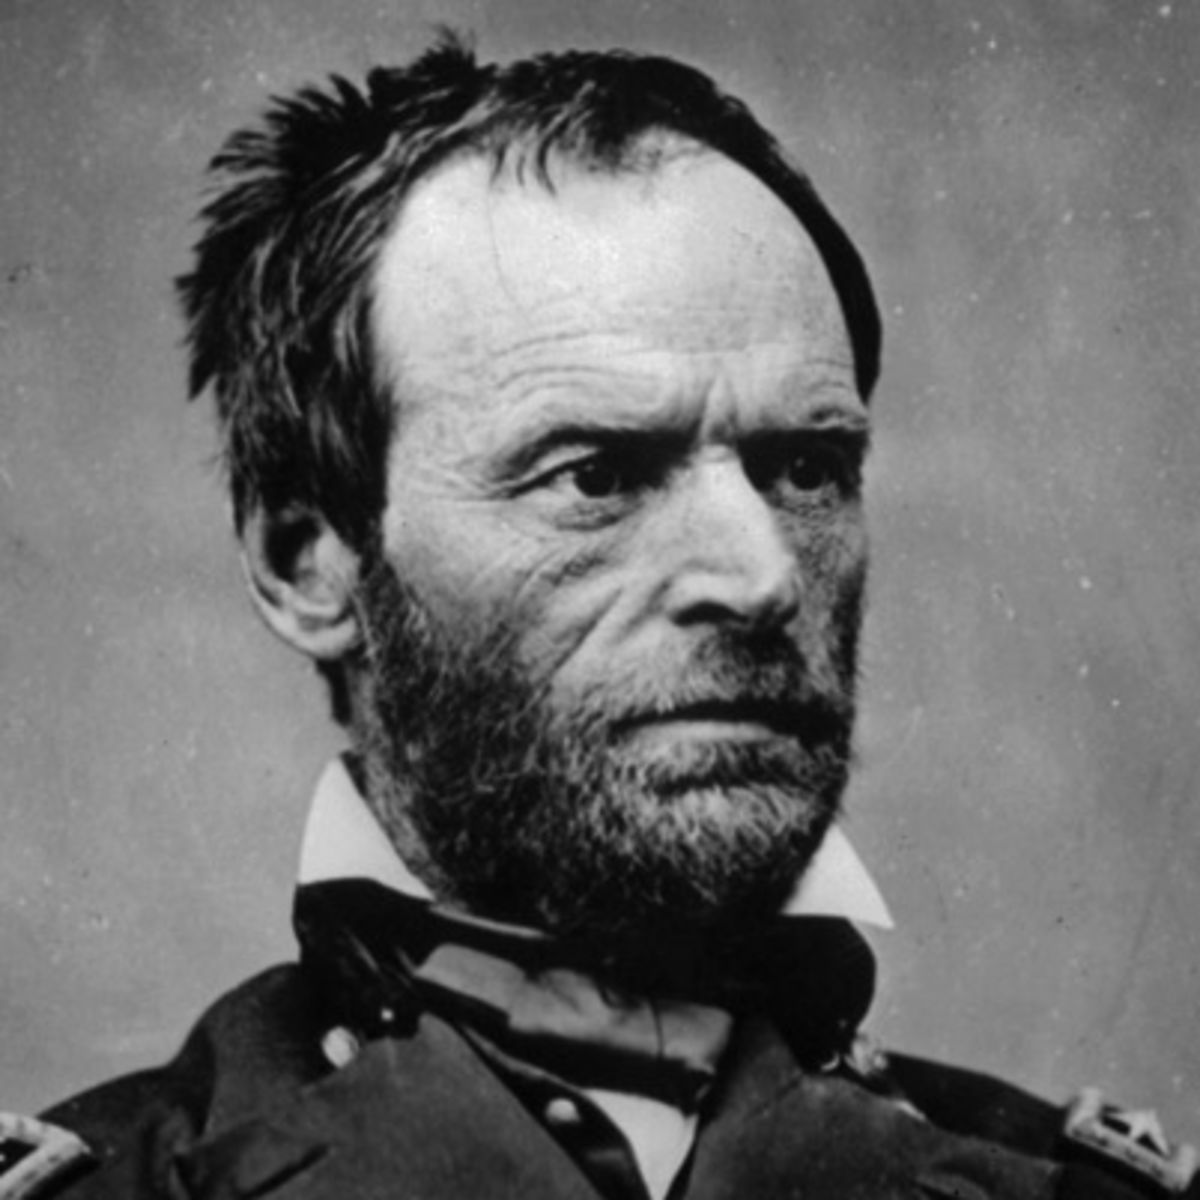 Sherman during the Civil War